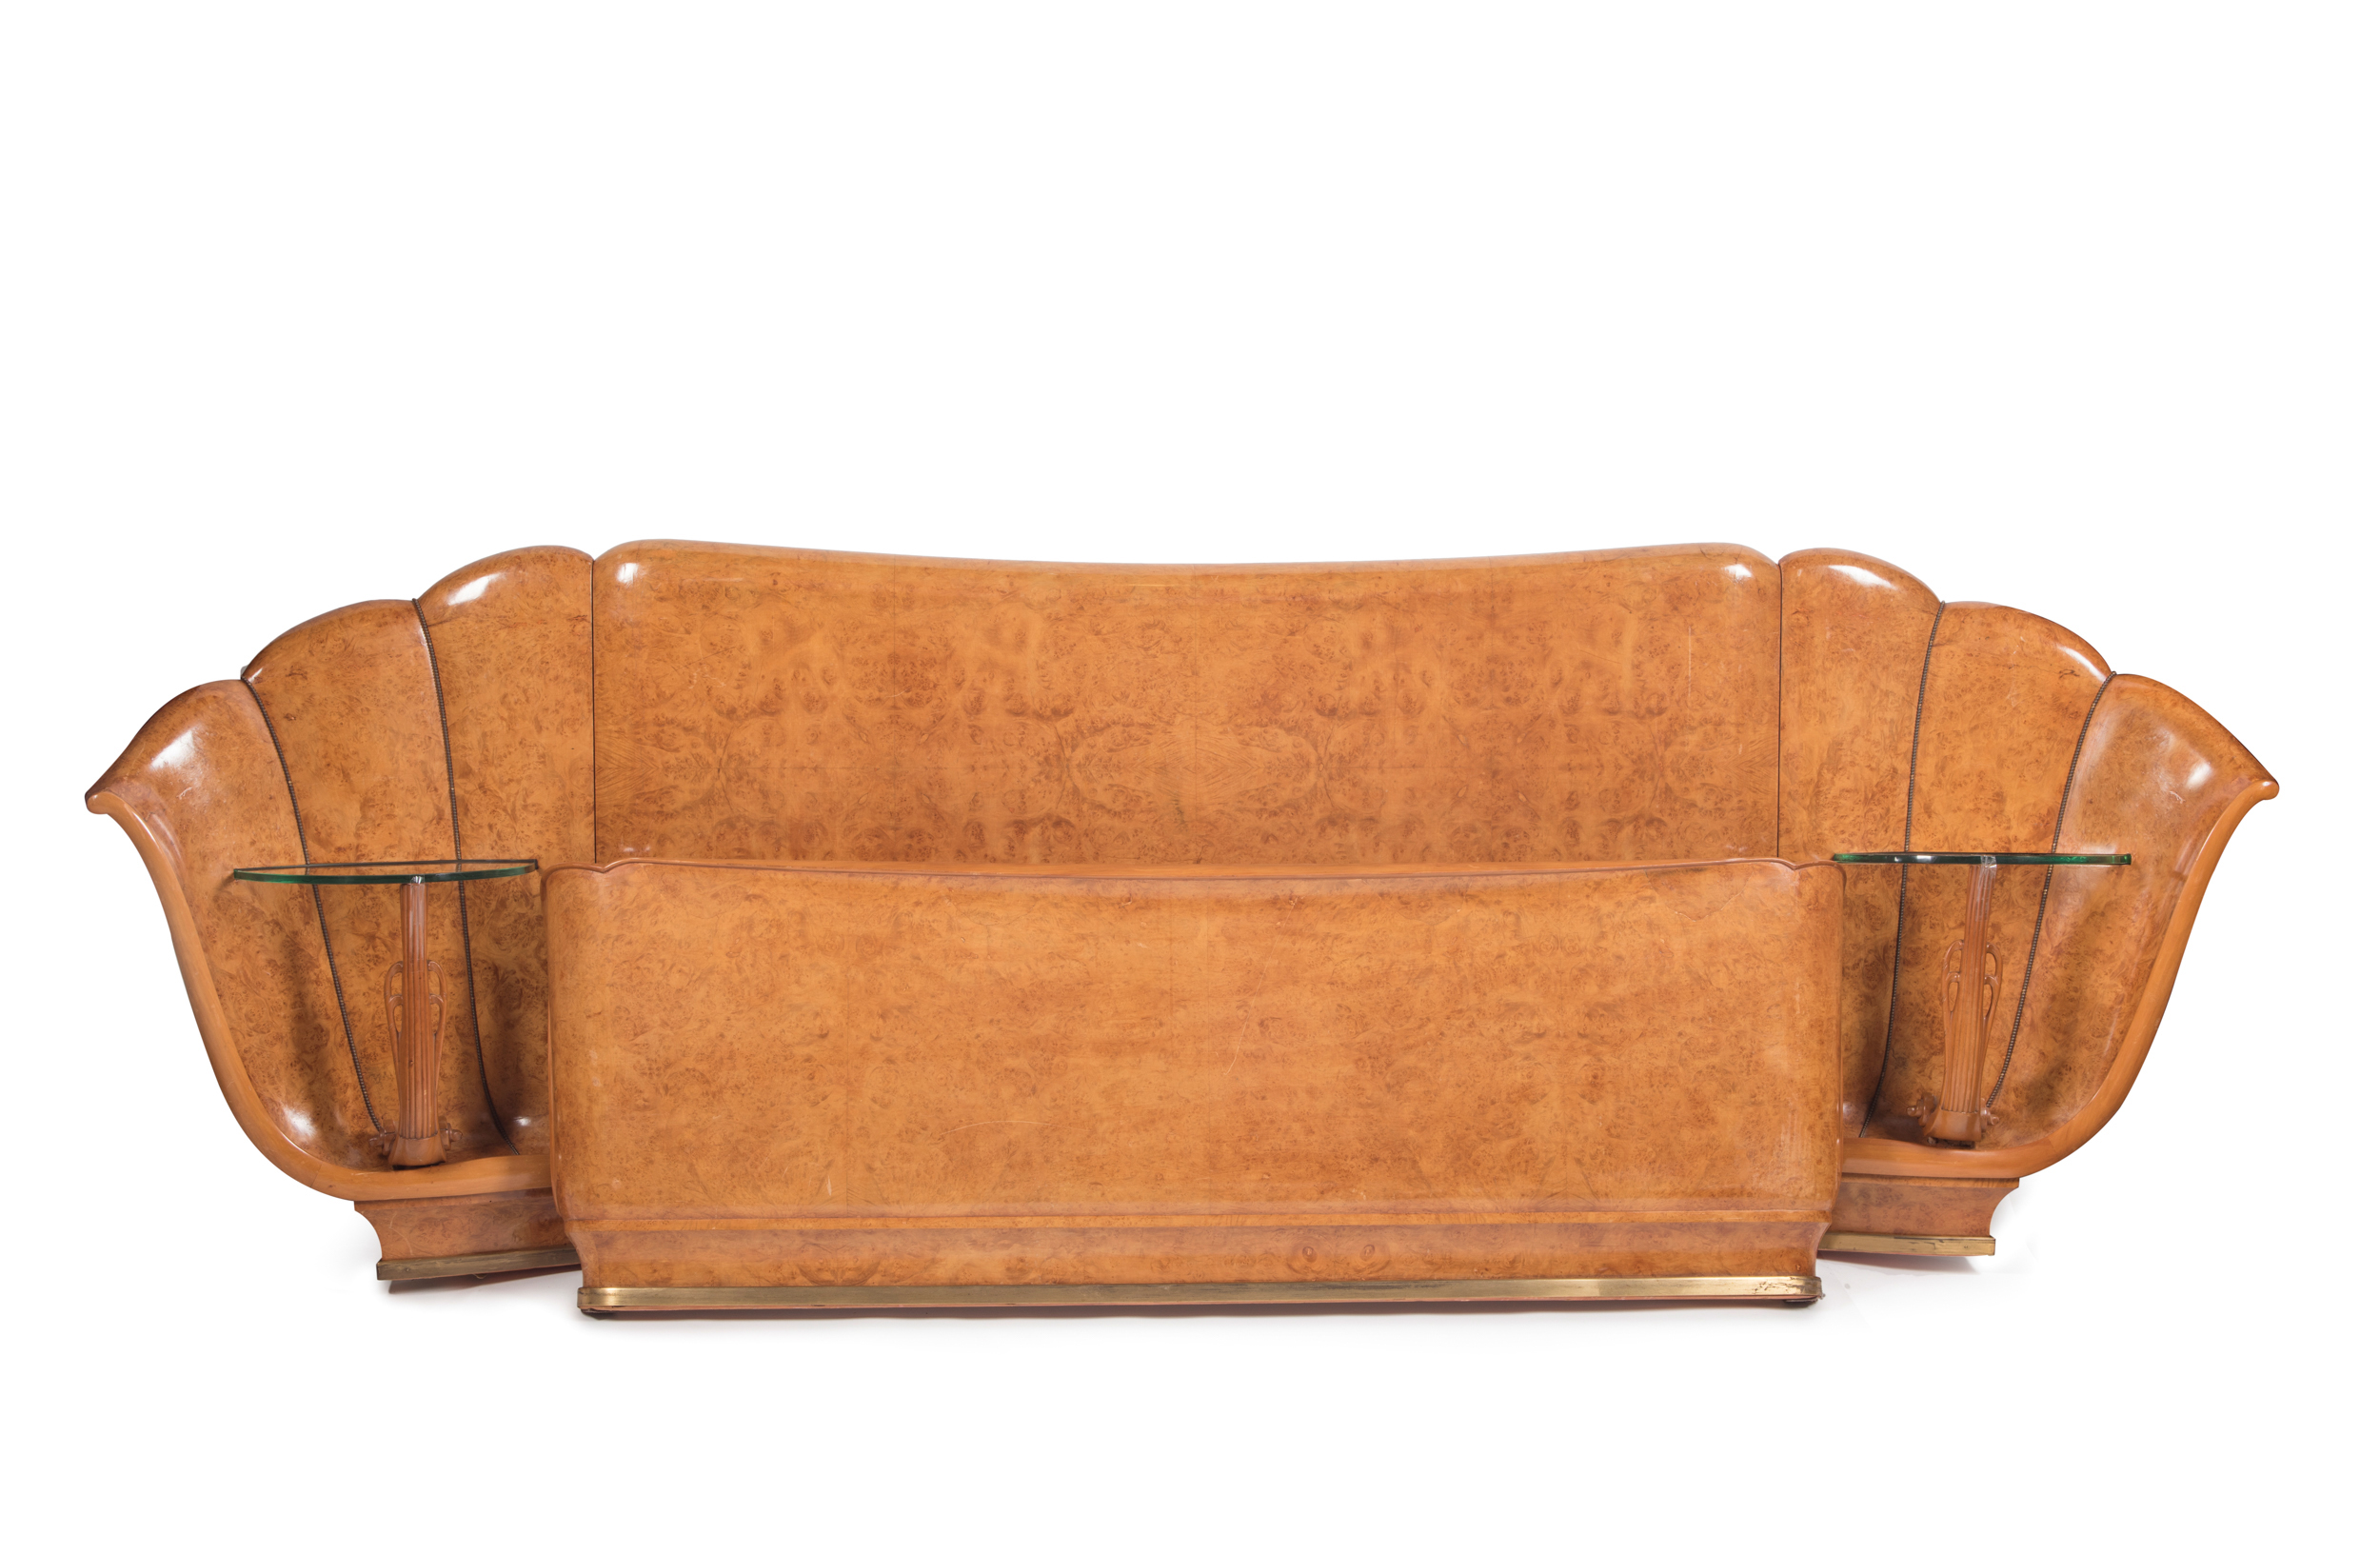 Early 20th Century French Art Deco Bed